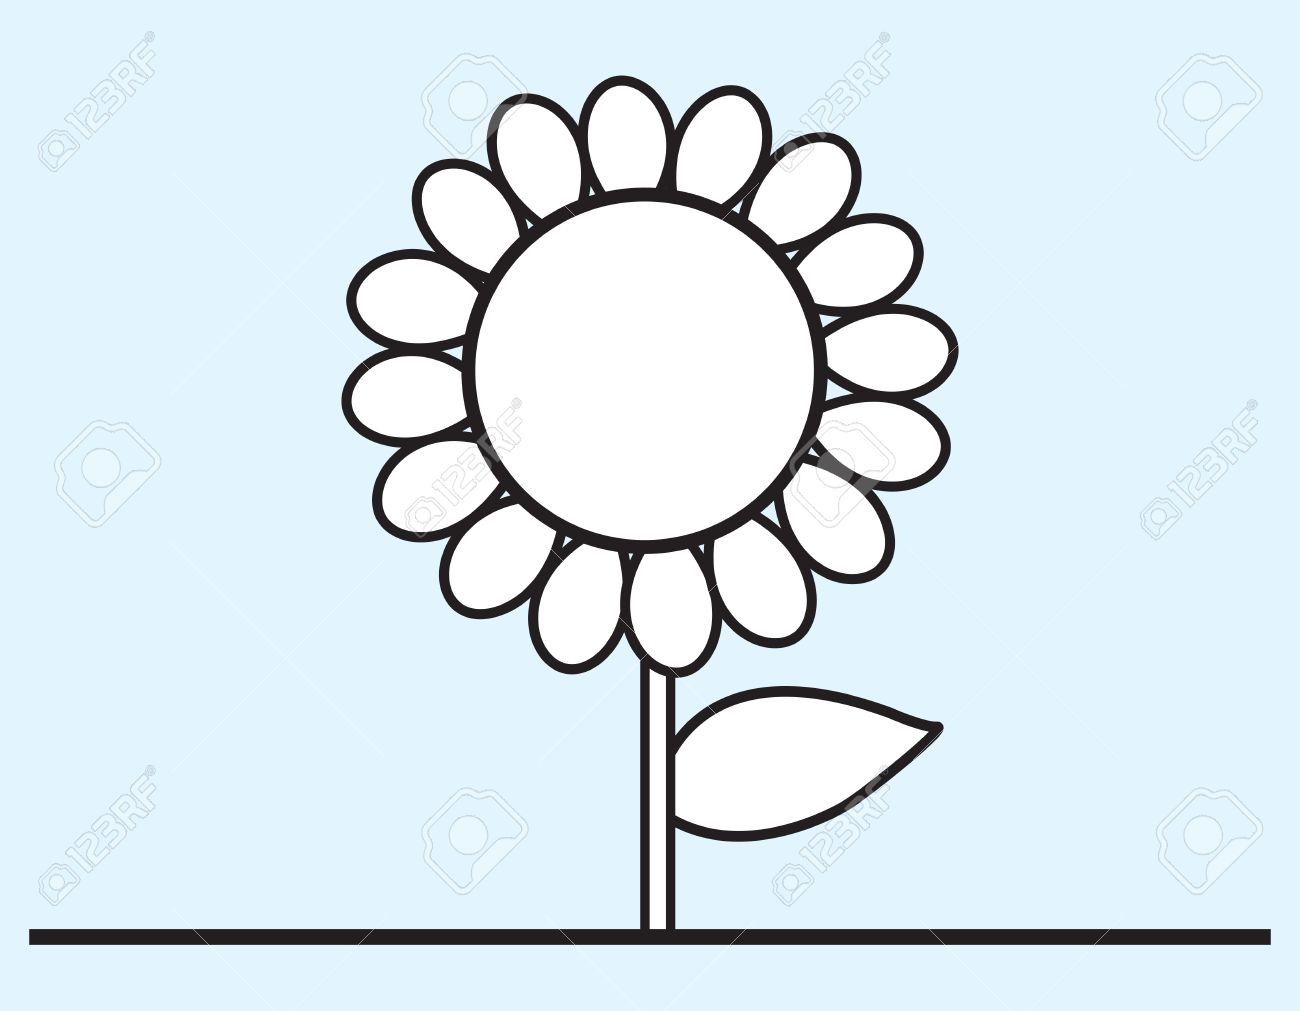 Flower Cartoon Drawing At Getdrawings Free For Personal Use